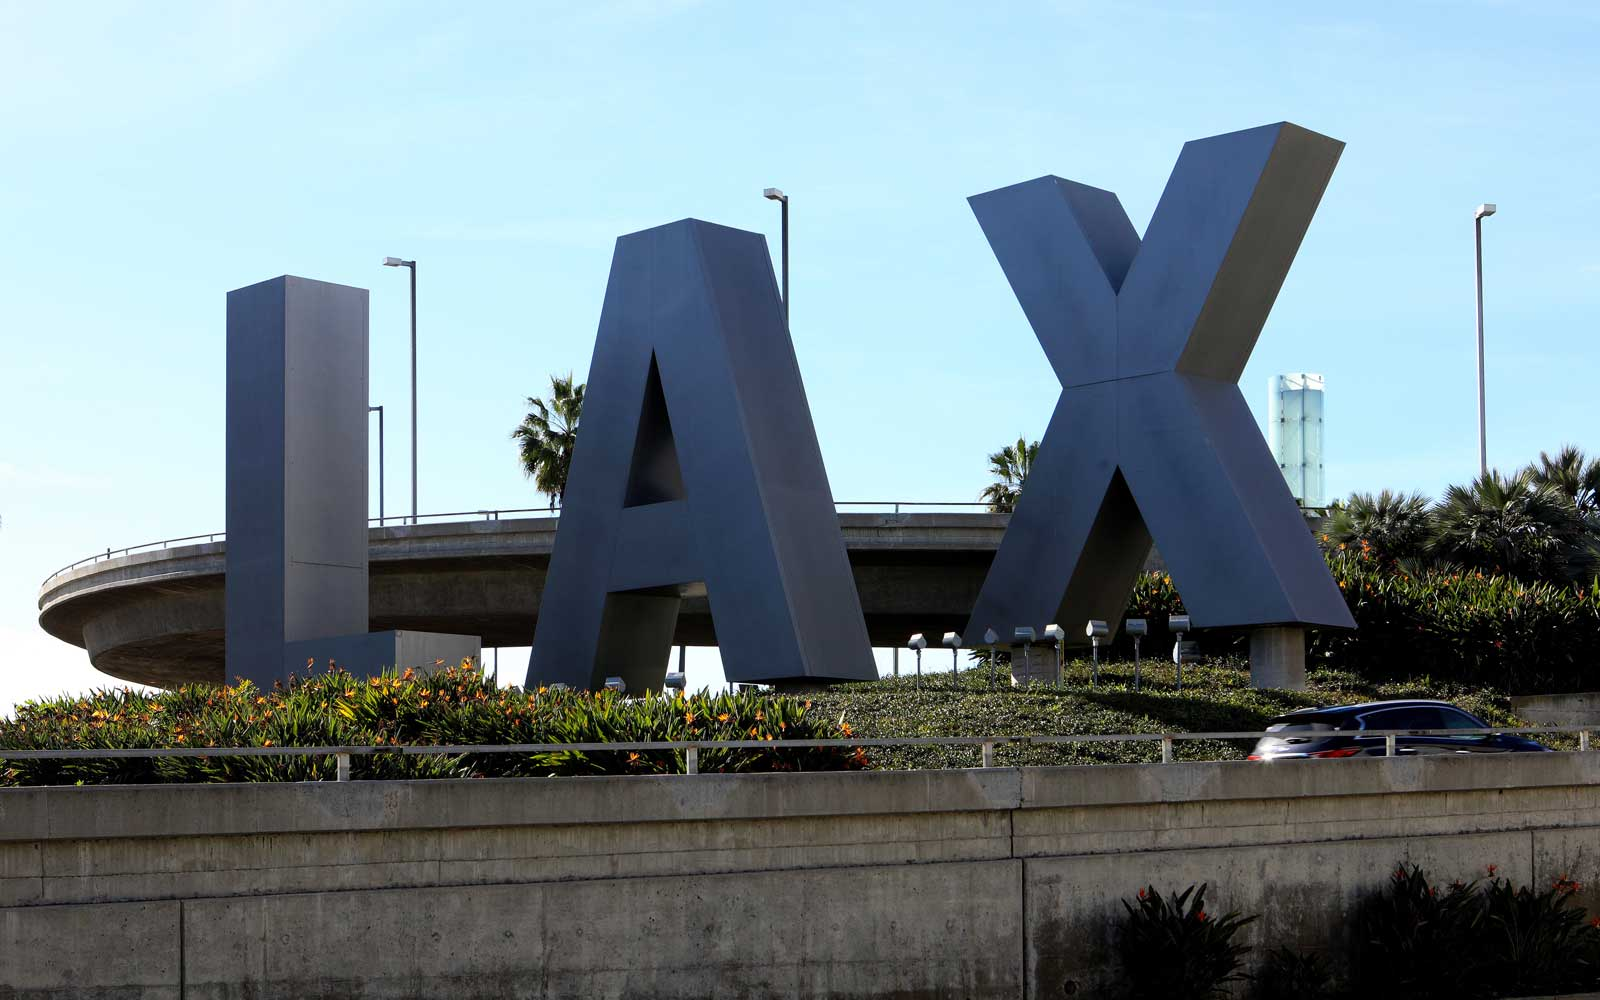 Infected Passenger May Have Exposed LAX Travelers to Measles, Officials Warn